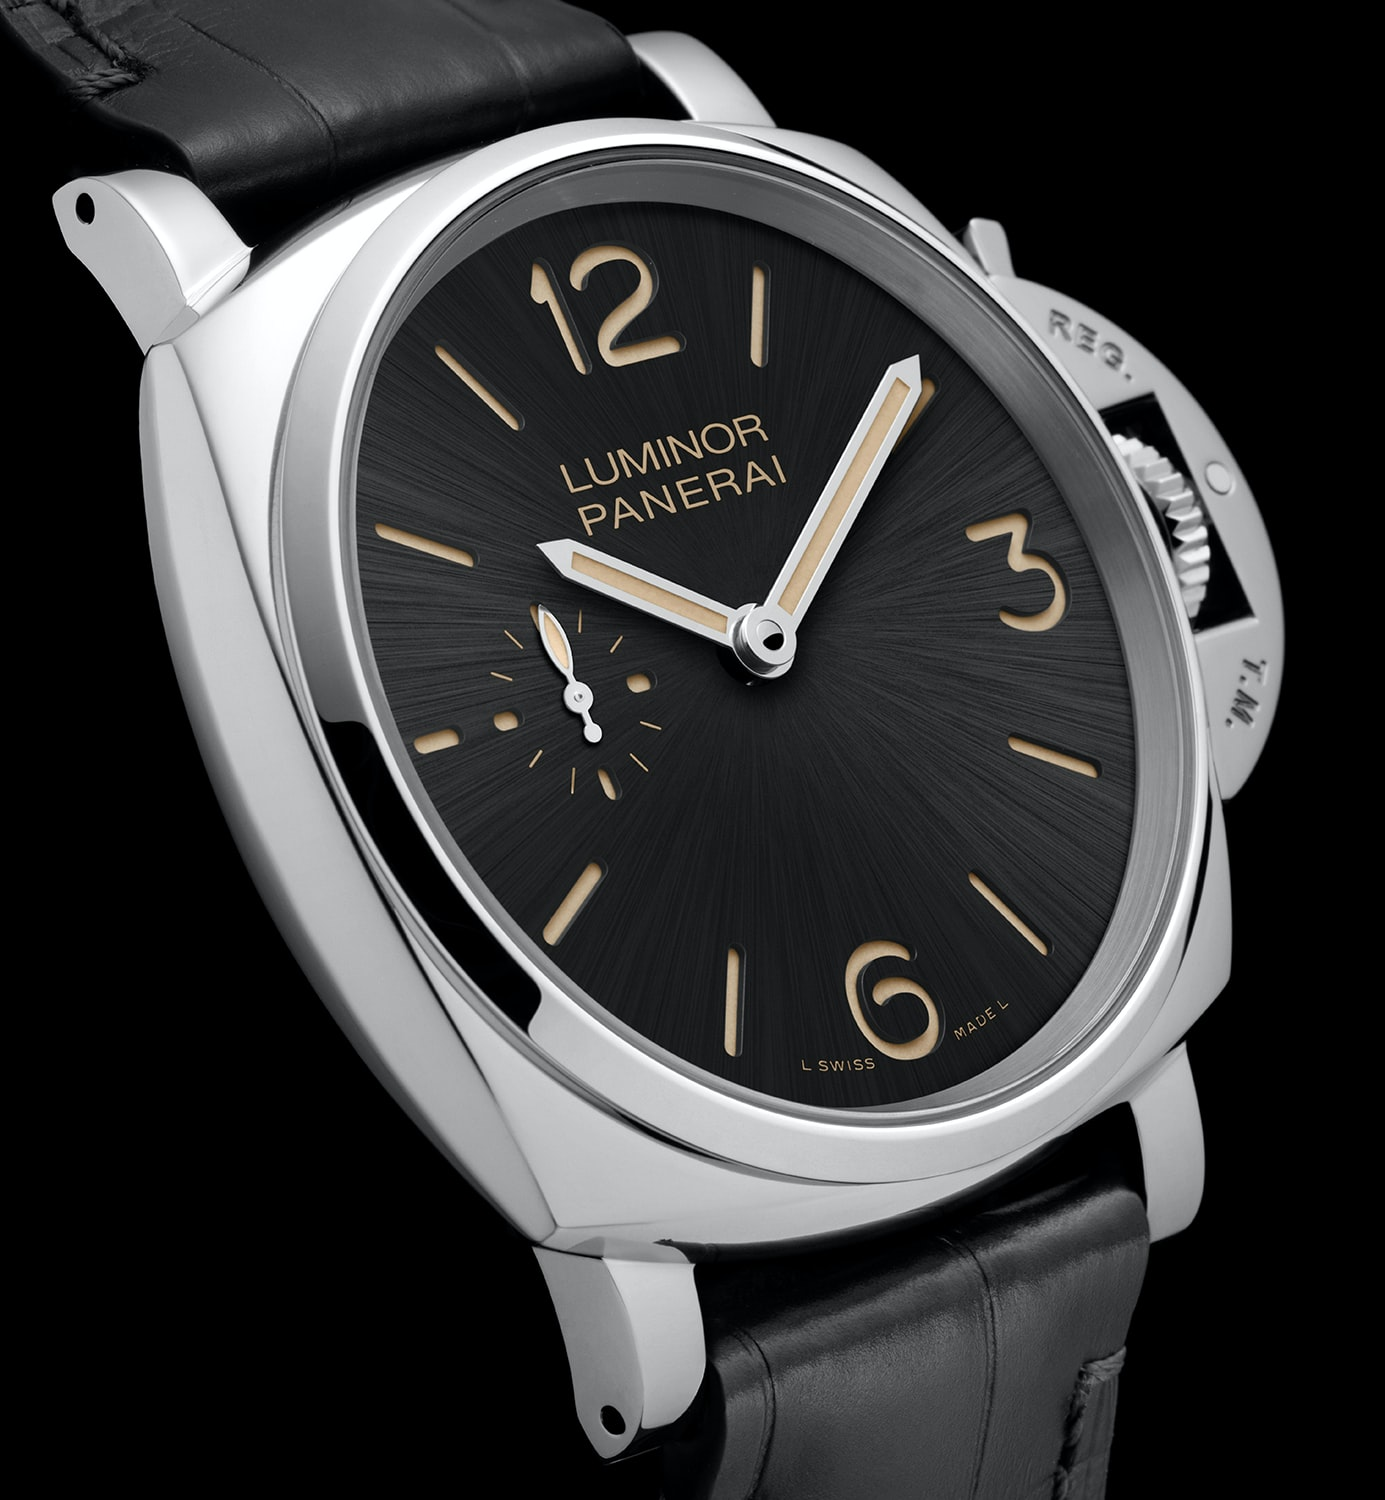 Introducing: The New Panerai Luminor 'Due,' Watches Officially Debuted At The 'Dive Into Time' Exhibition In Florence (Live Pics, Pricing & Availability) Introducing: The New Panerai Luminor 'Due,' Watches Officially Debuted At The 'Dive Into Time' Exhibition In Florence (Live Pics, Pricing & Availability) 1111111